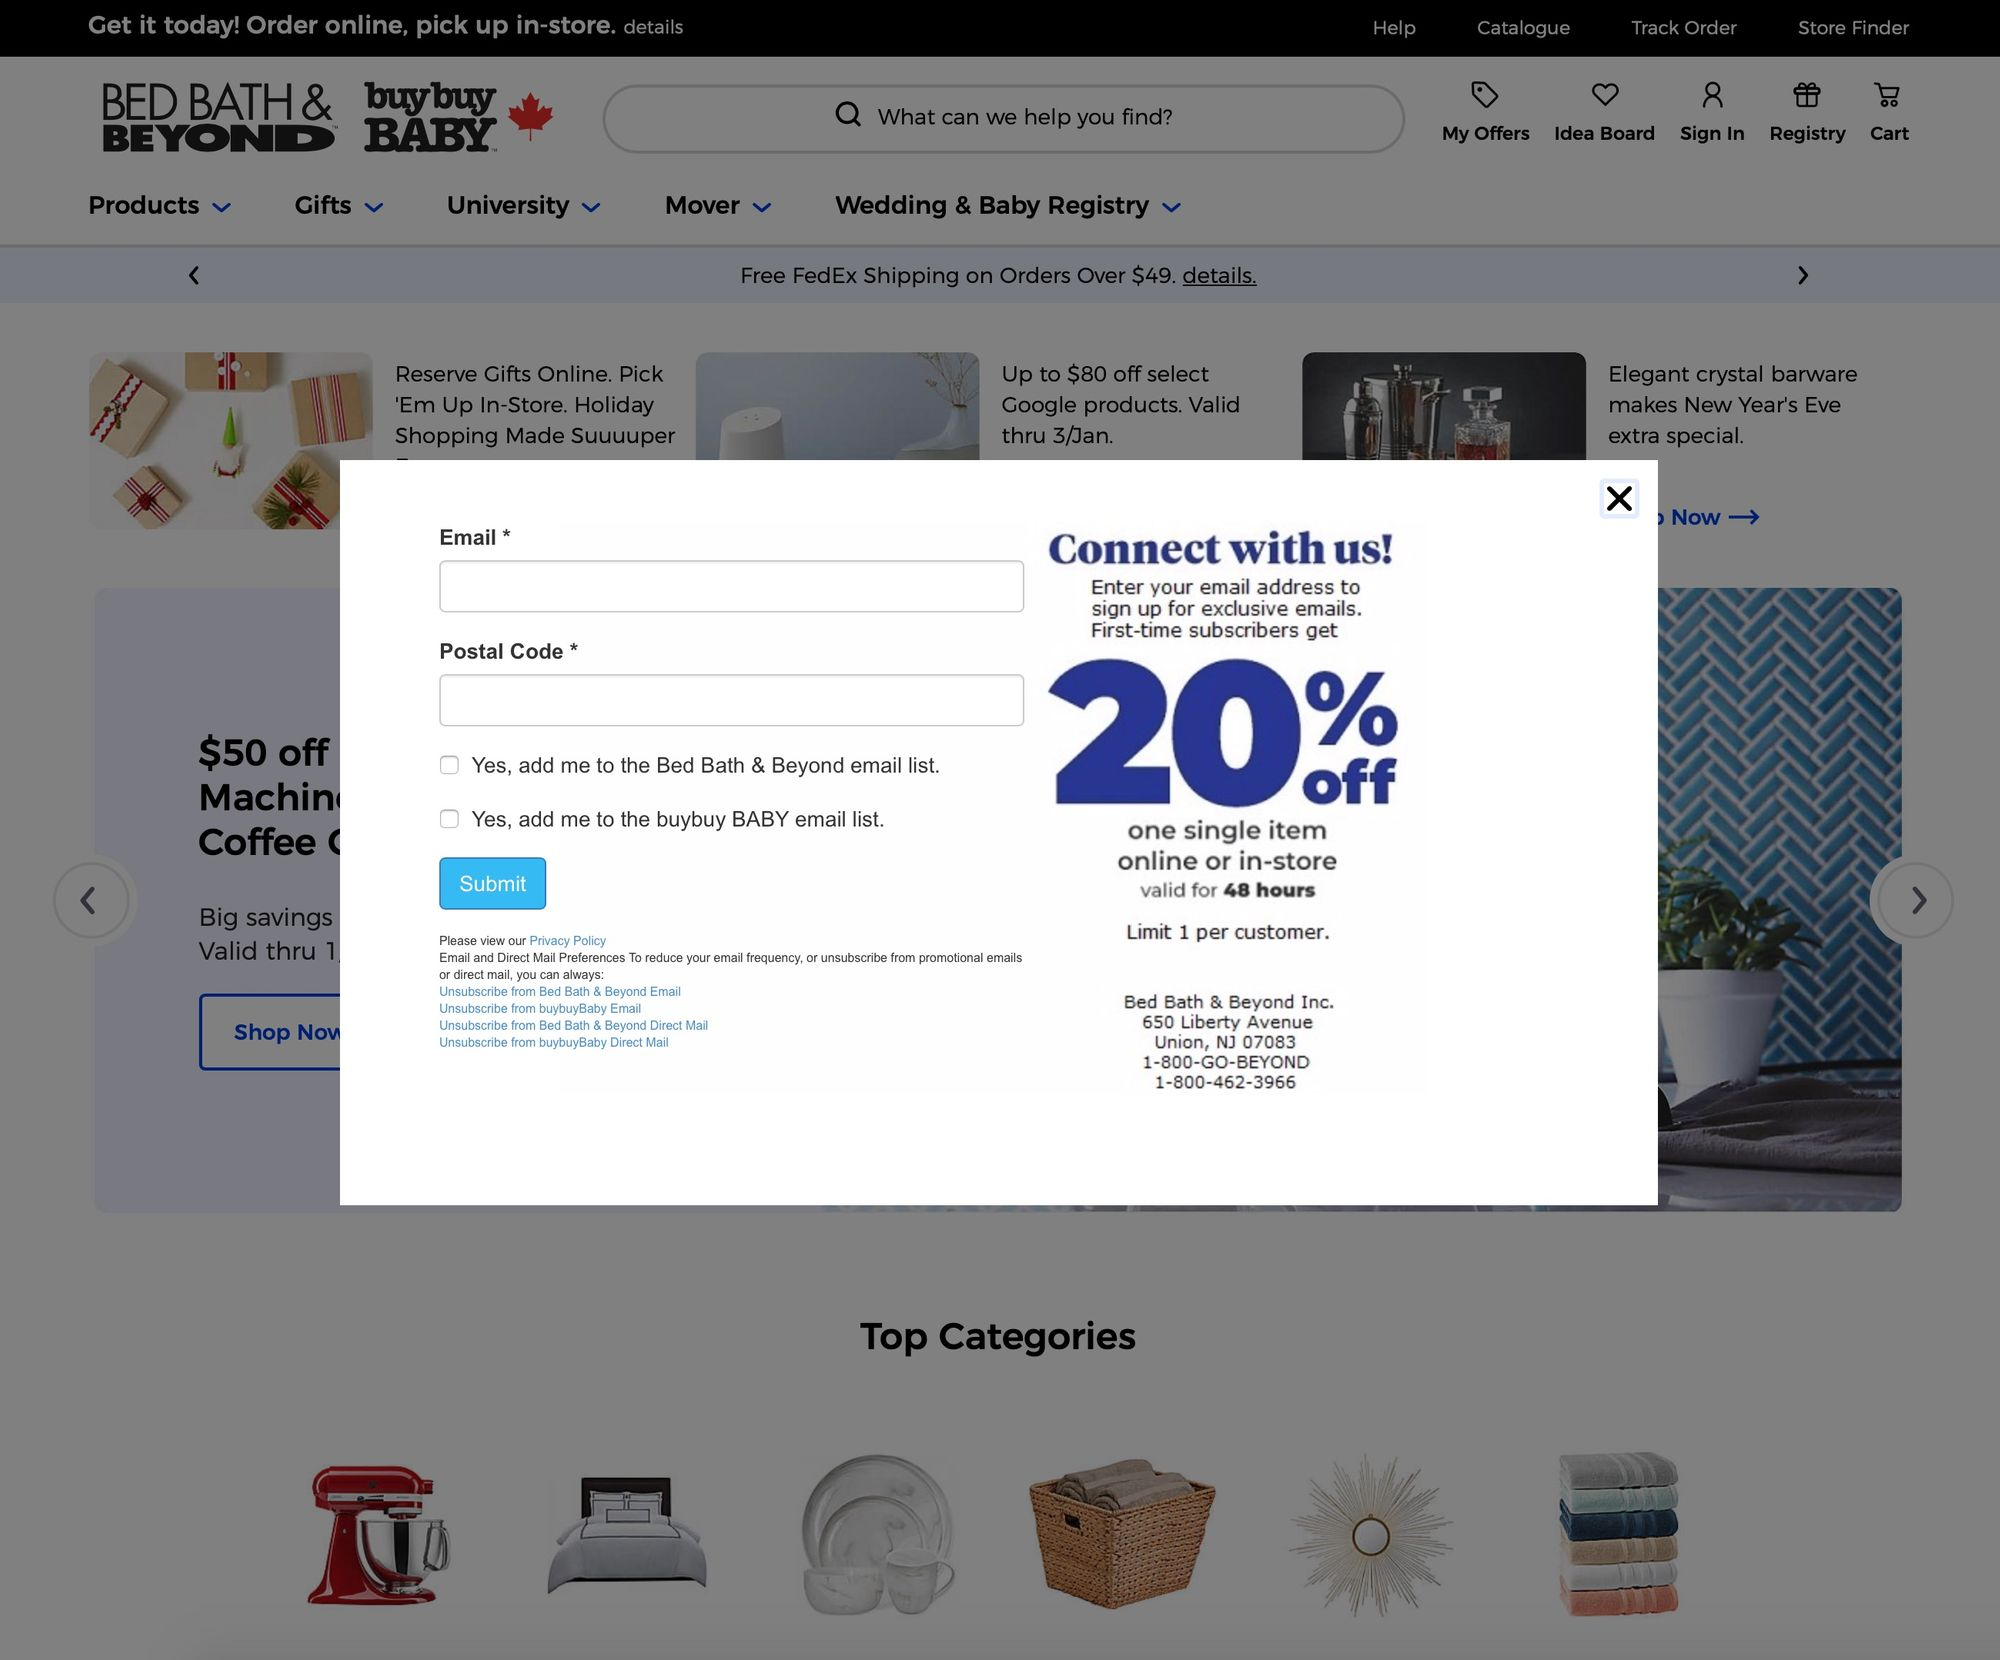 Off Registry Wedding Gifts: Marketing Automation With Bed Bath & Beyond (Case Study